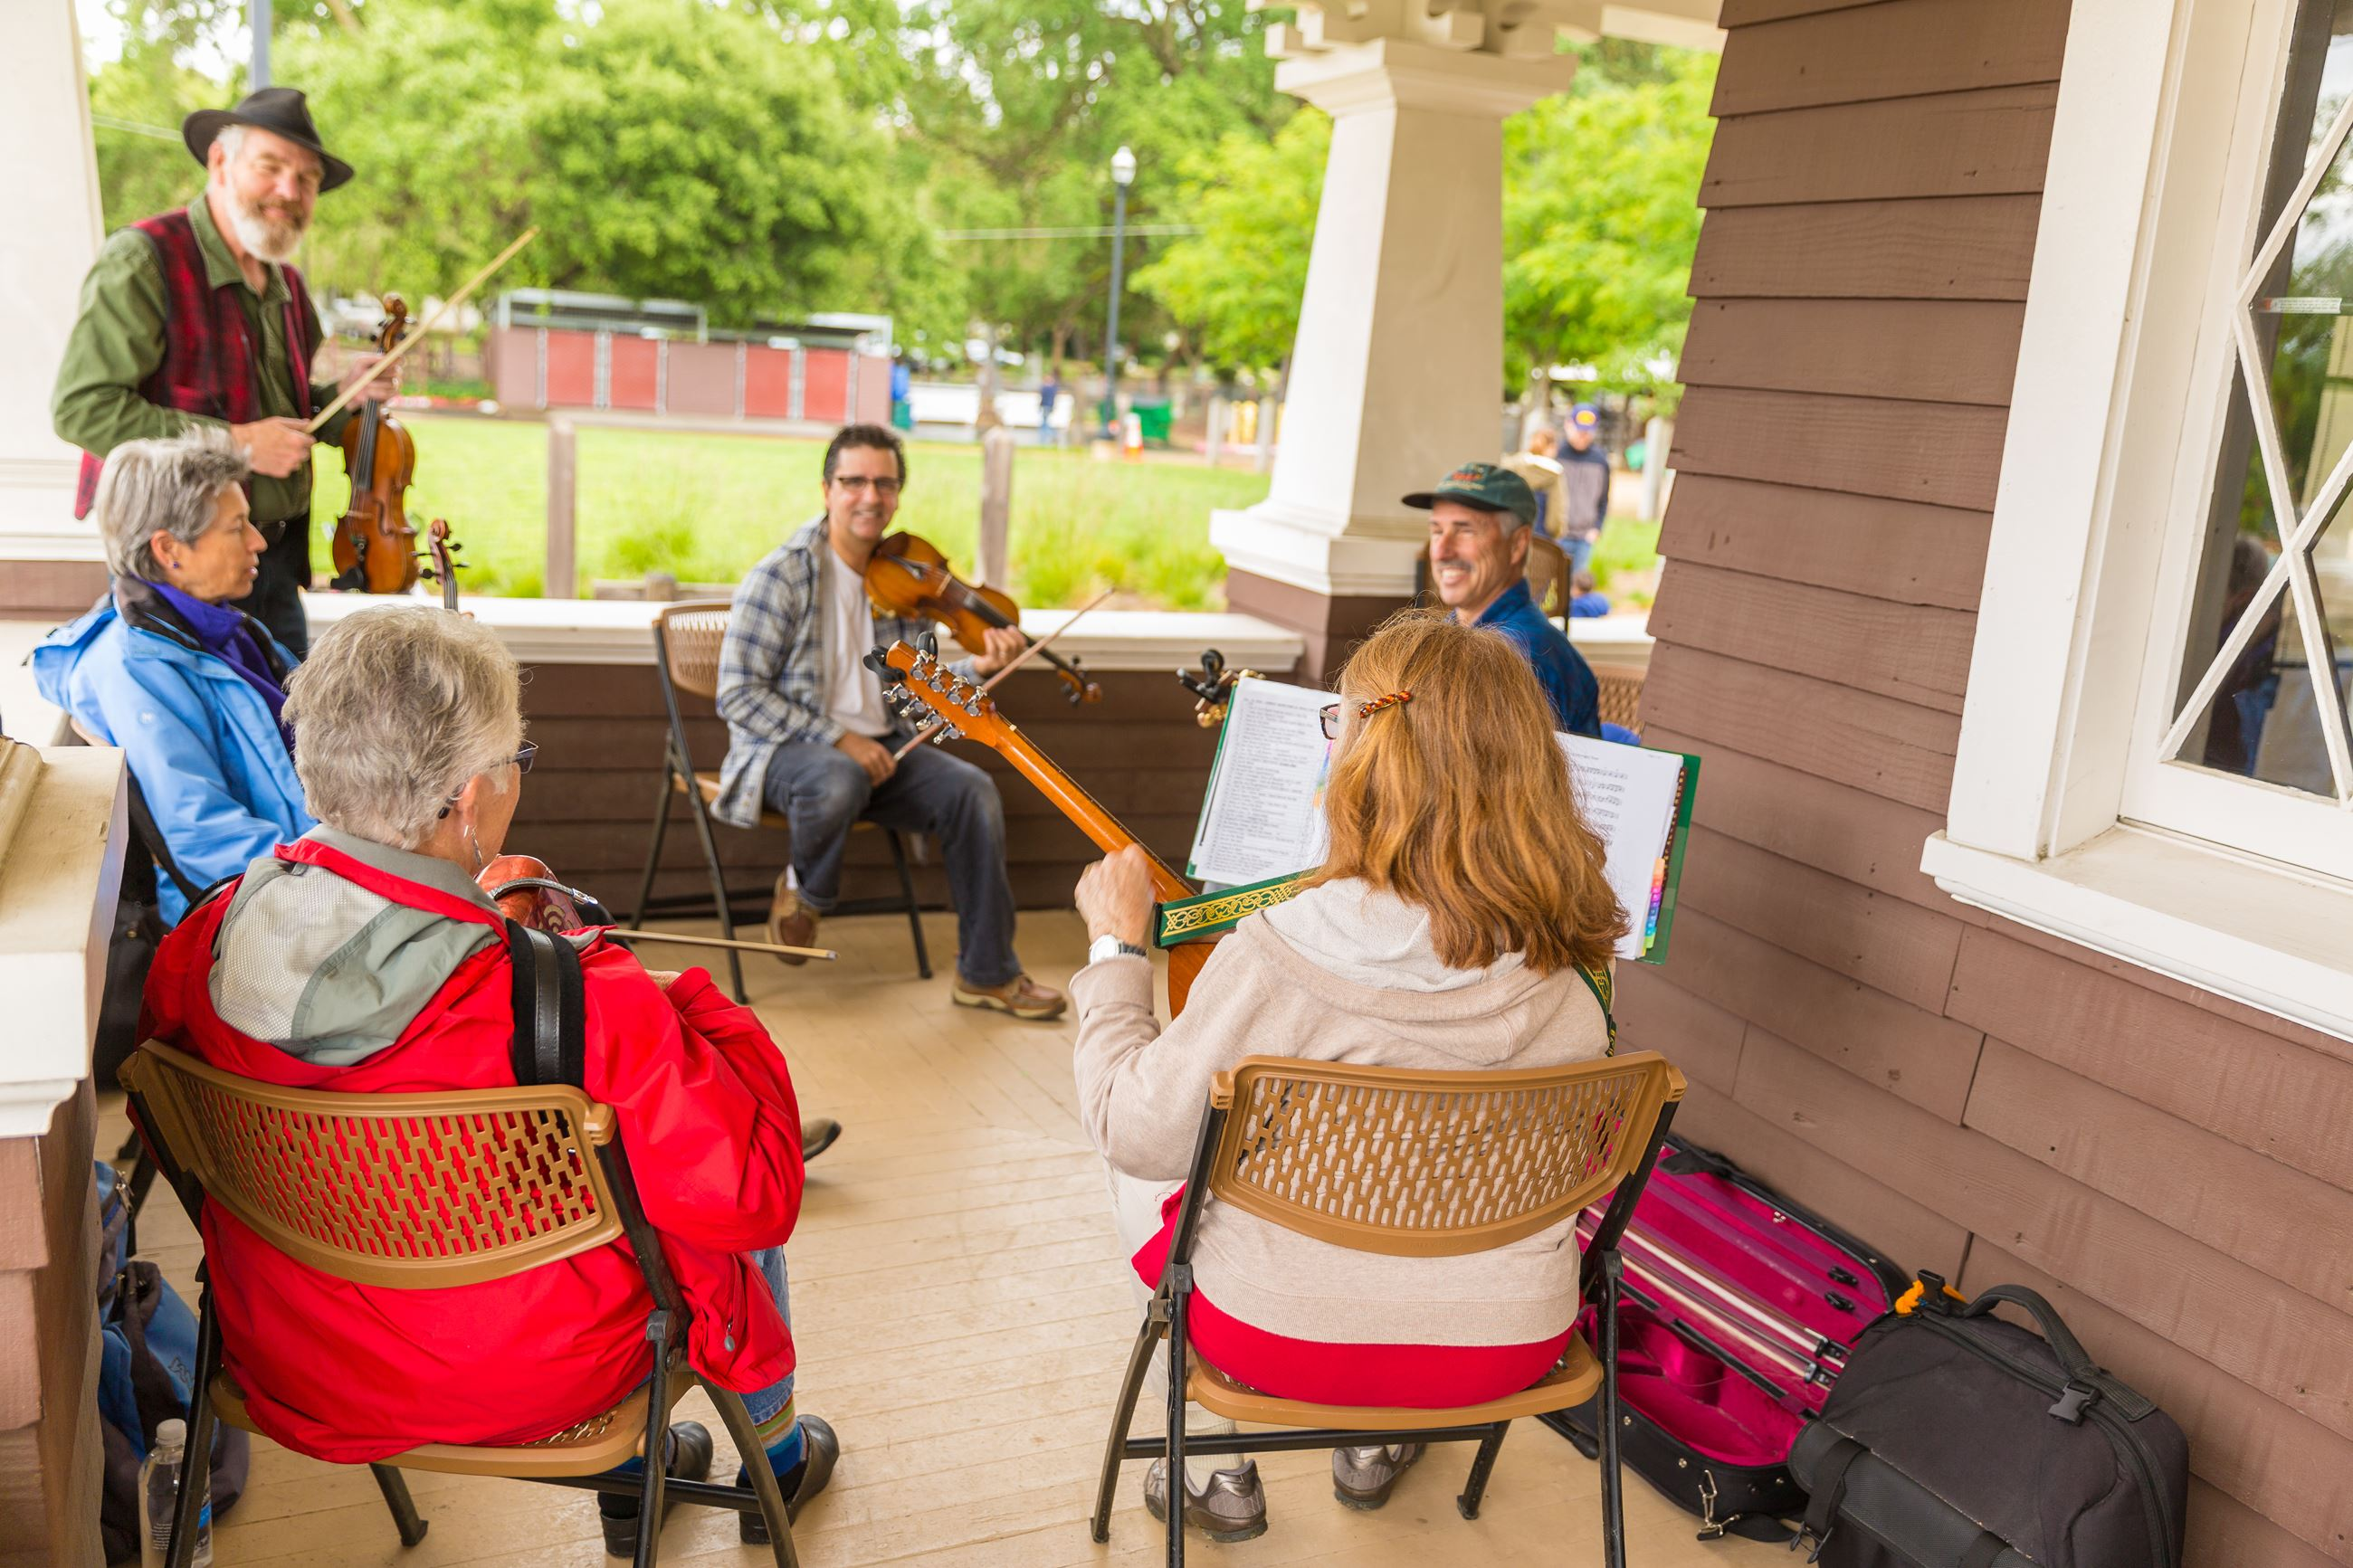 Musicians on the porch of the Kolb House playing music